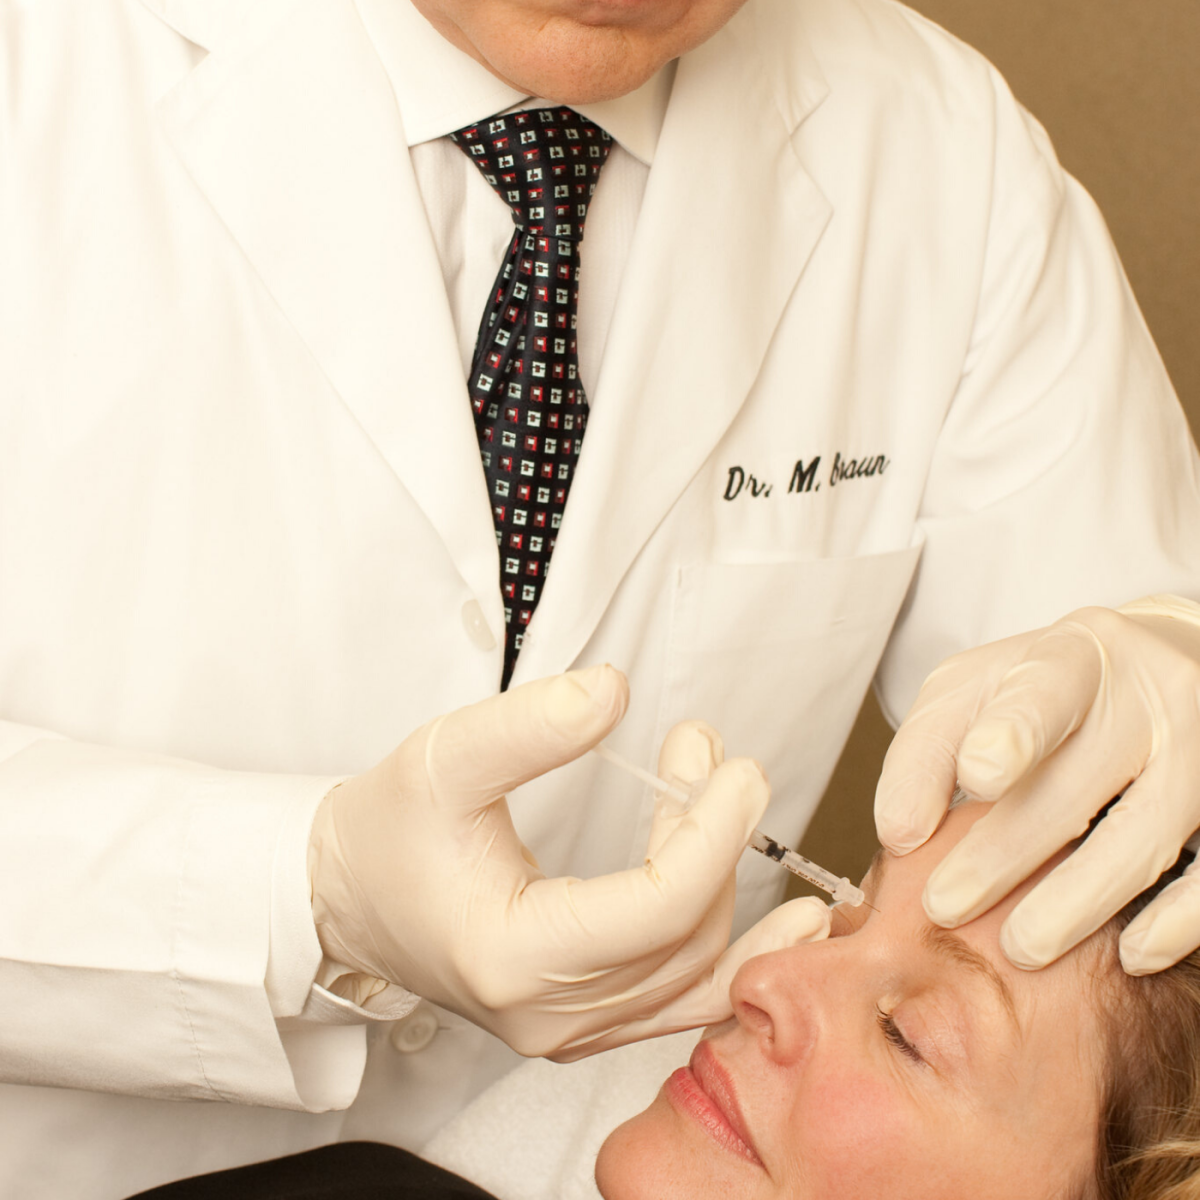 Botox, a popular brand of skin-tightening injections, gets its name from botulinum toxin, the protein that makes it effective.